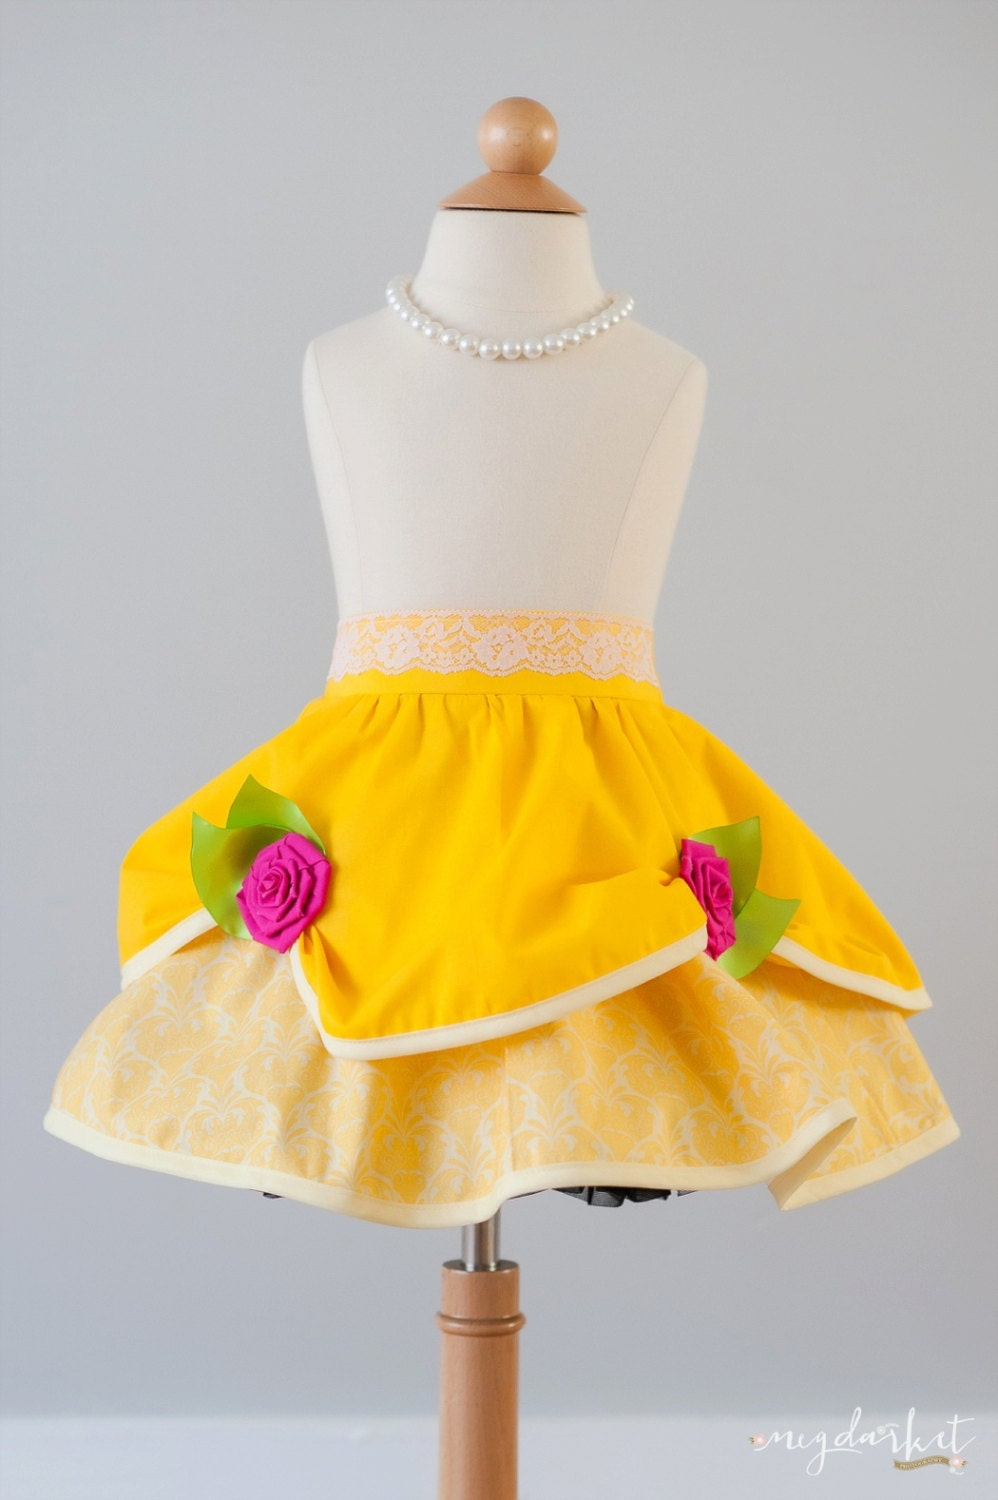 Just Skirts And Dresses Inspiration: Belle Inspired Dress Up Costume Skirt Circle Skirt Style